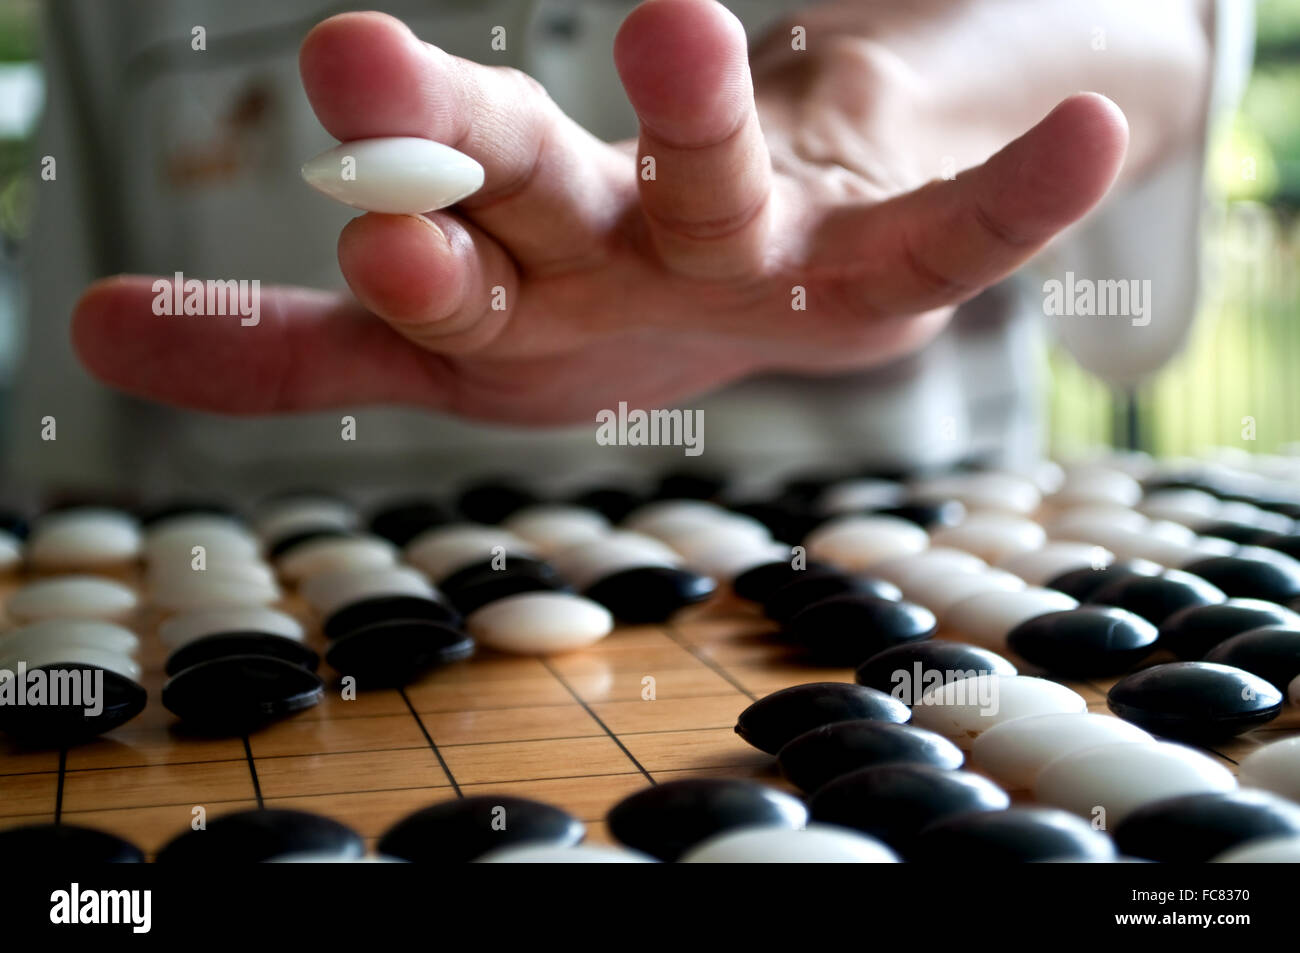 White Go player closeup hand showing how to hold the piece. Selected focus. - Stock Image